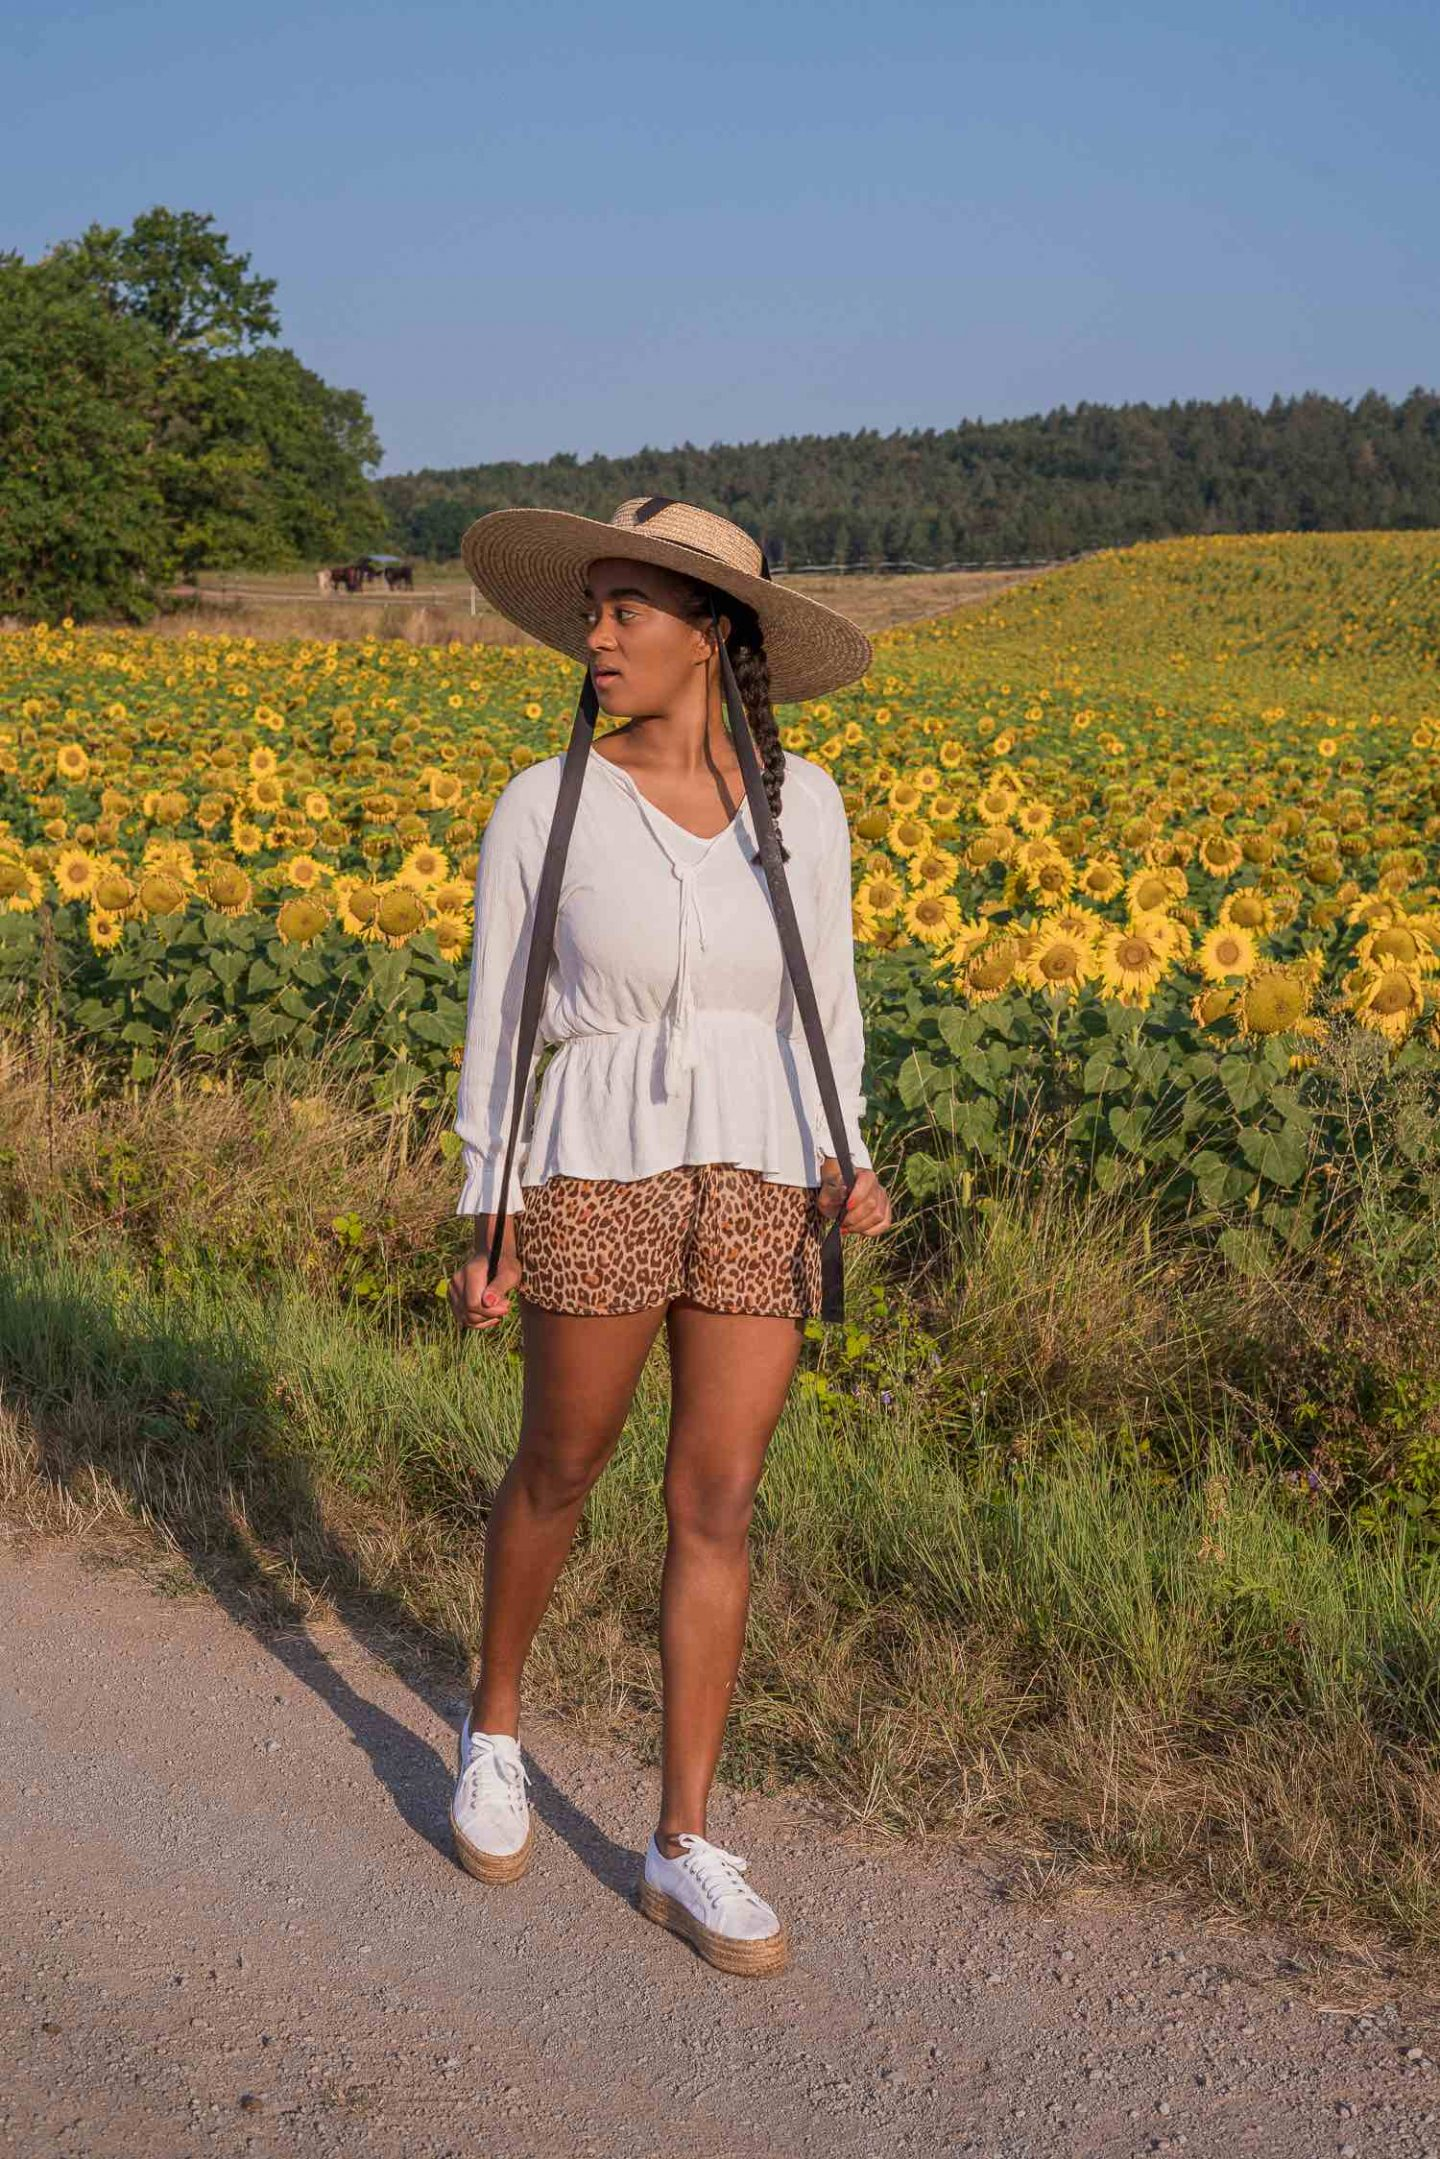 Photoshooting in a sunflower field, pictures in a flower field, straw hat in summer